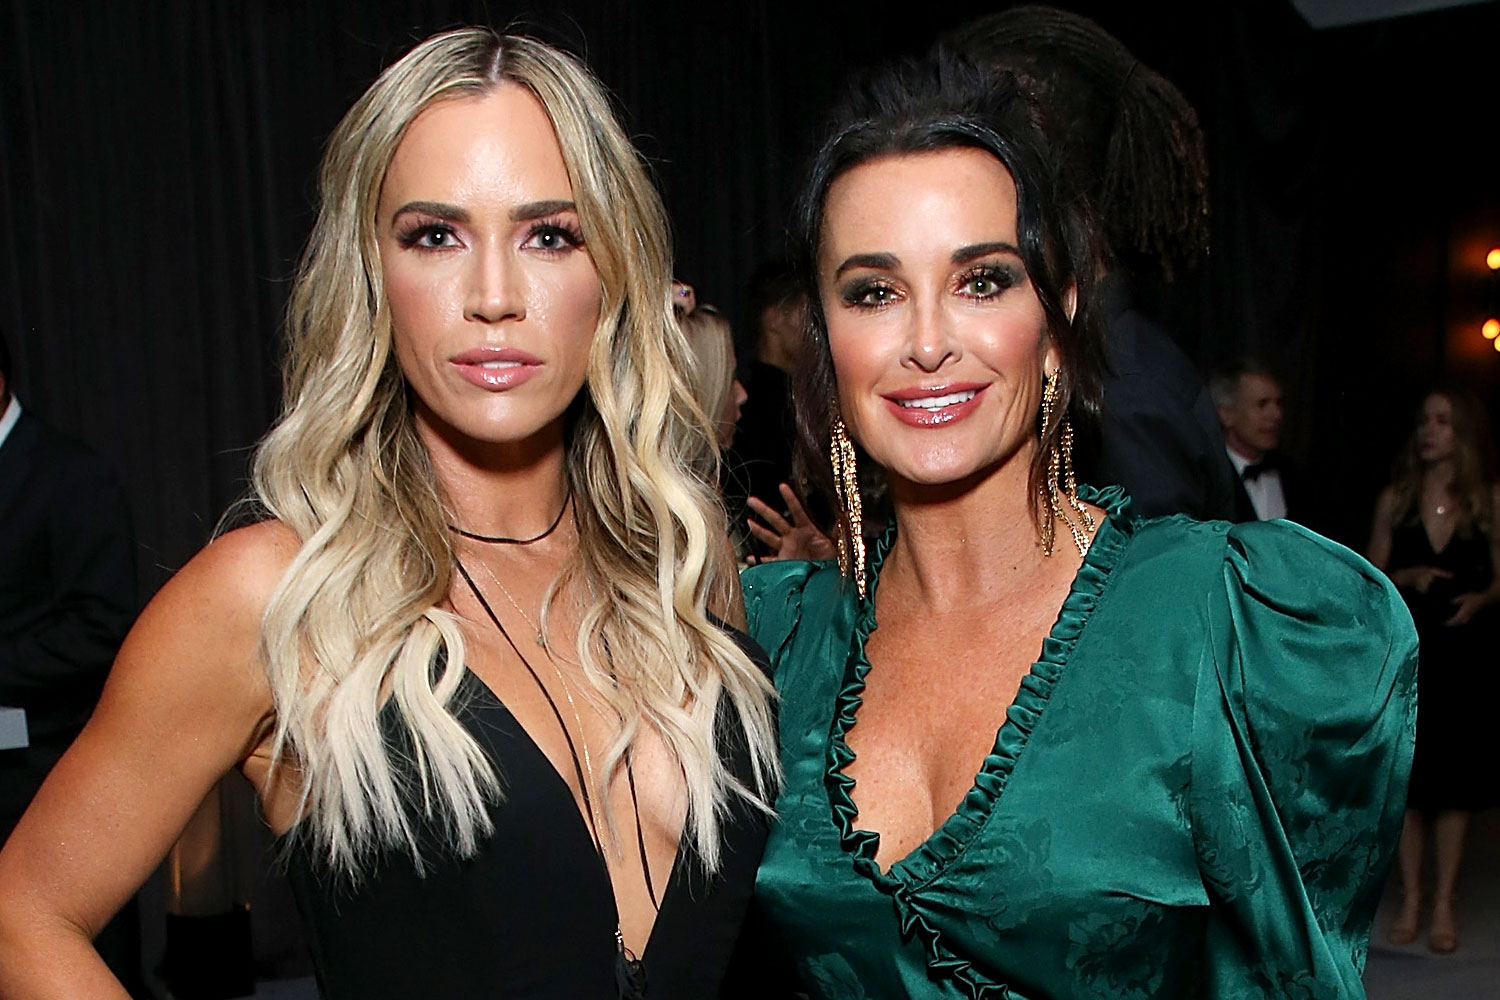 andy-cohen-hints-teddi-mellencamp-and-kyle-richards-are-being-fired-from-the-rhobh-heres-why-fans-are-convinced-after-seeing-this-pic